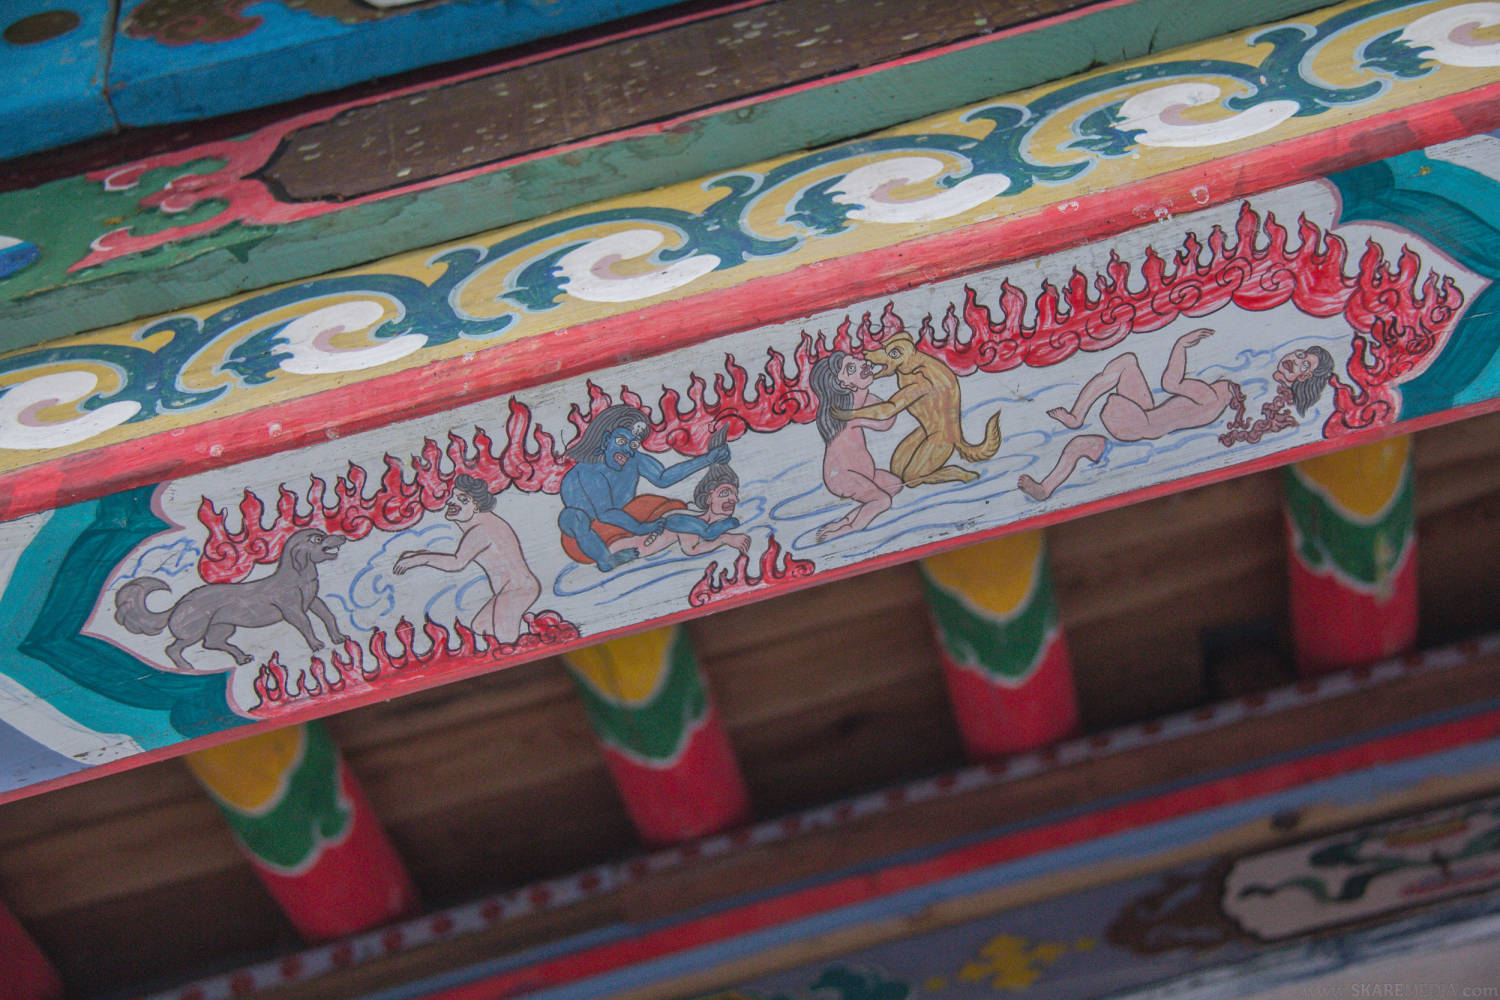 Buddhist temple artwork